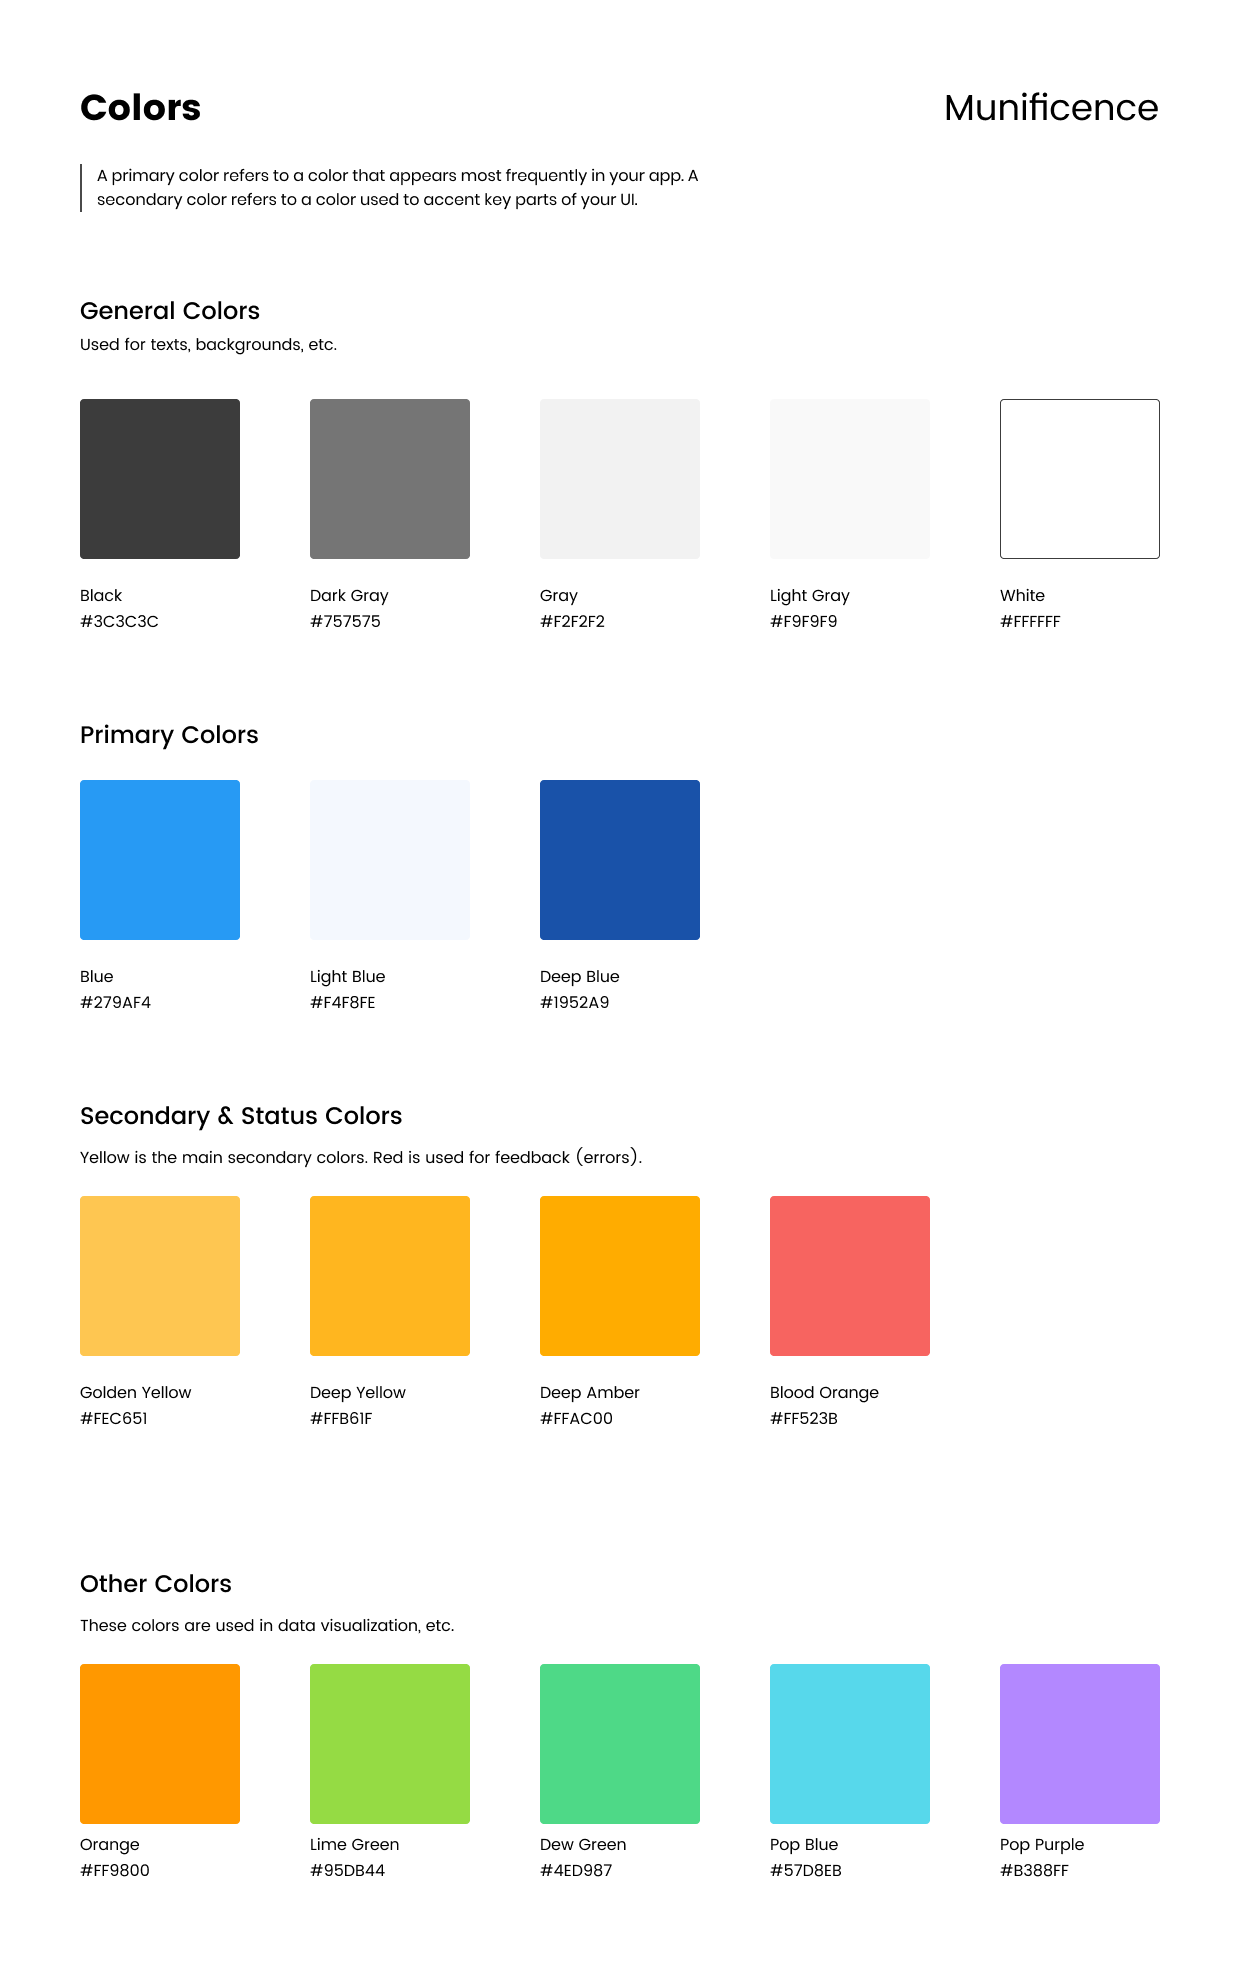 Munificence style guide: colors